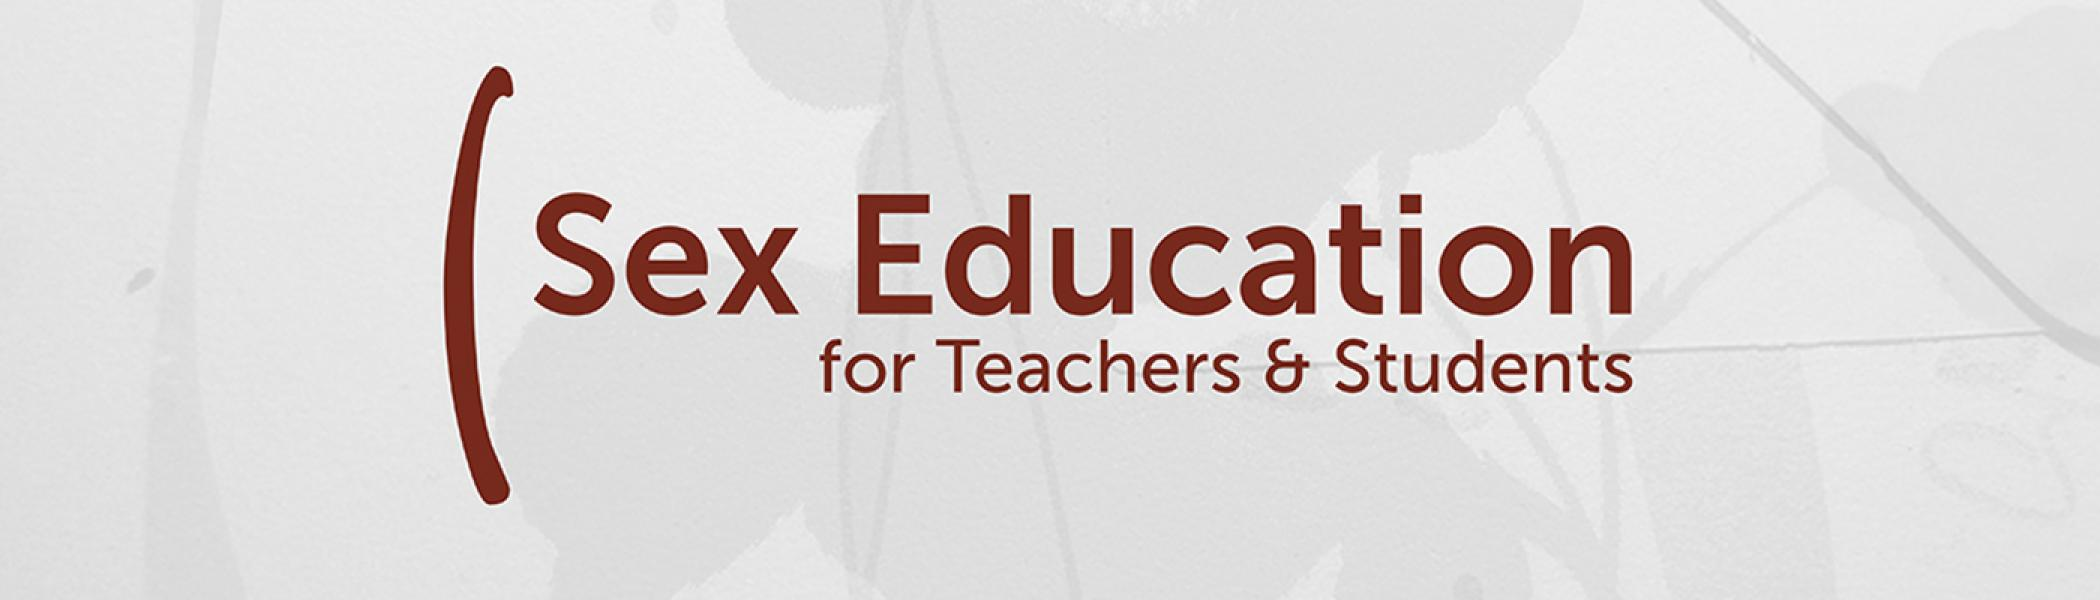 text that says Sex Education for Teachers and Students over a grey image